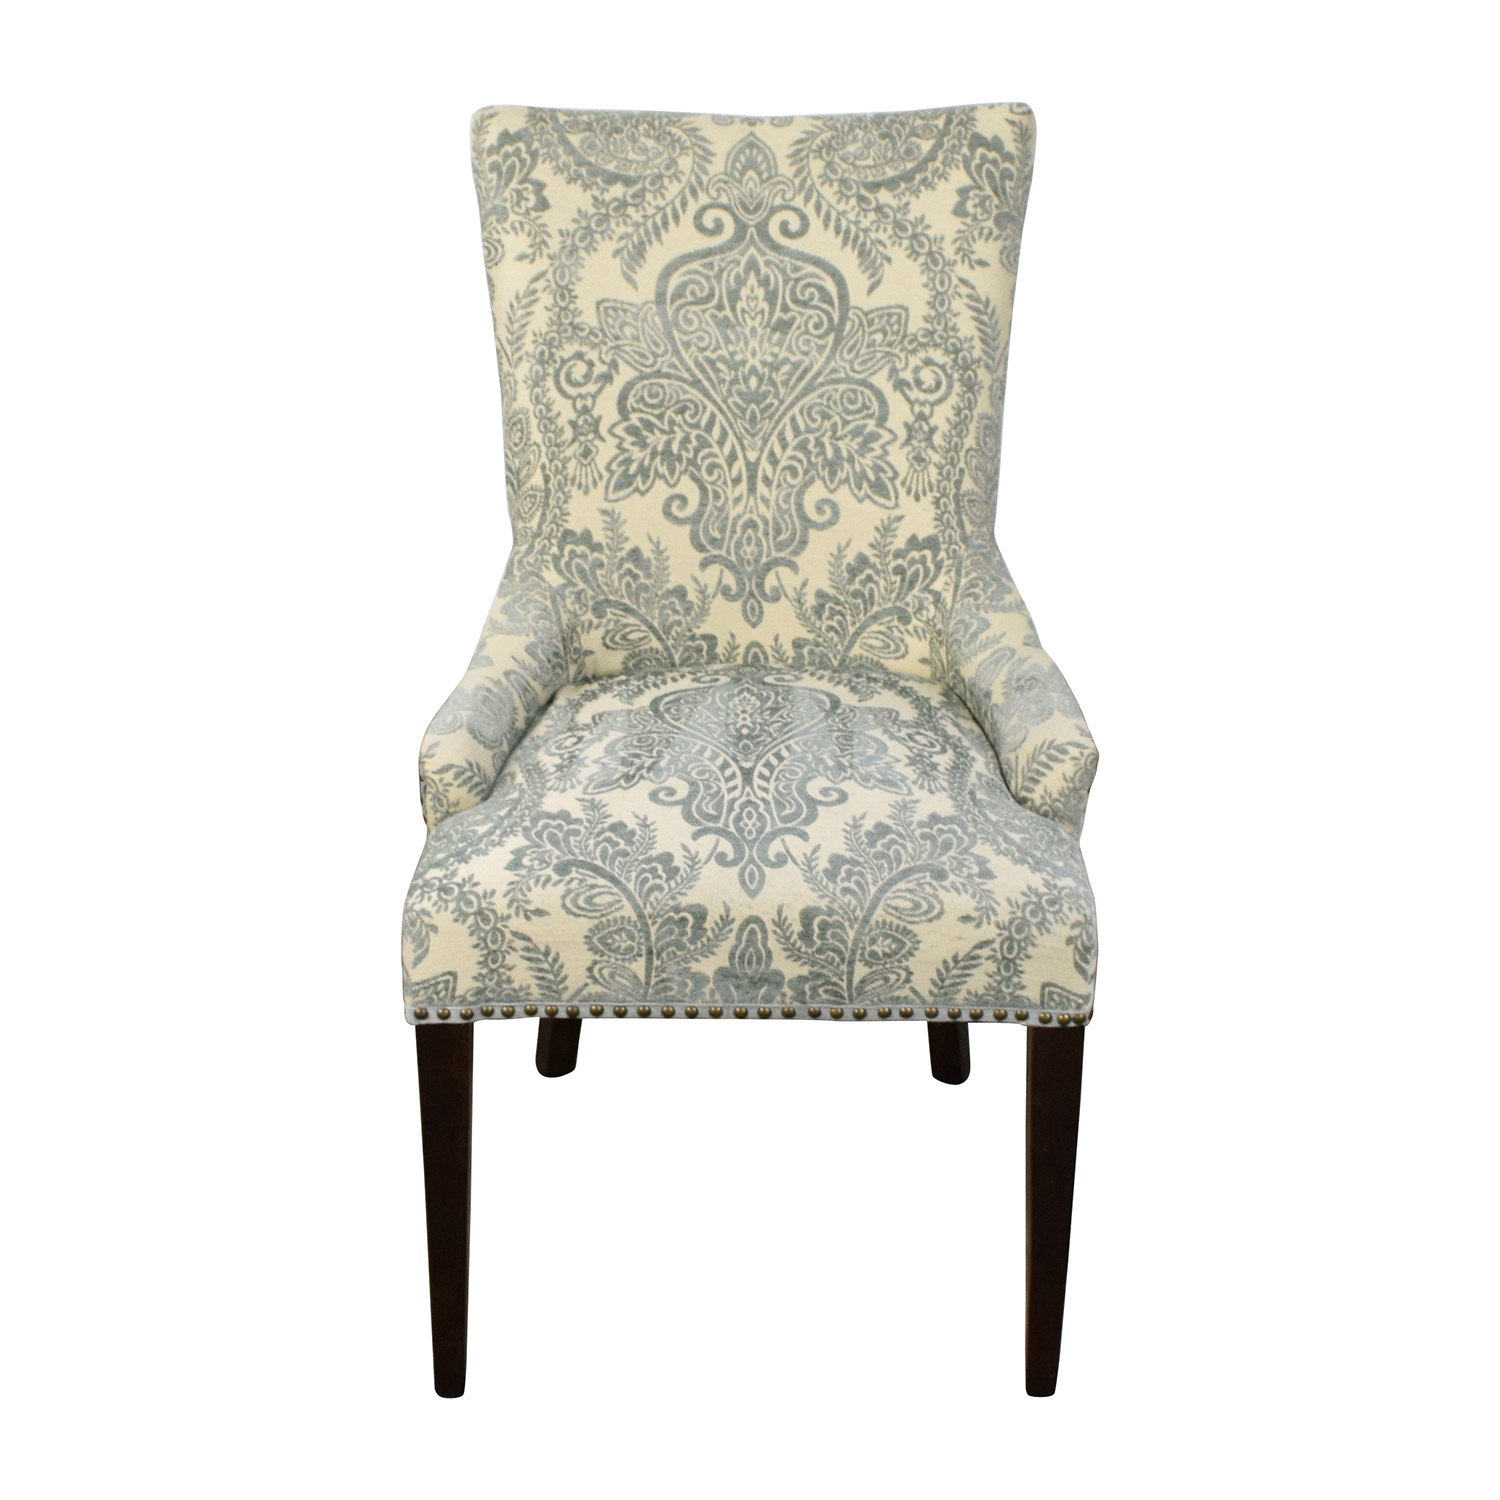 ... Shop Pier 1 Imports Adelle Collection Smoke Blue Dining Chair Pier 1  Imports Accent Chairs ...